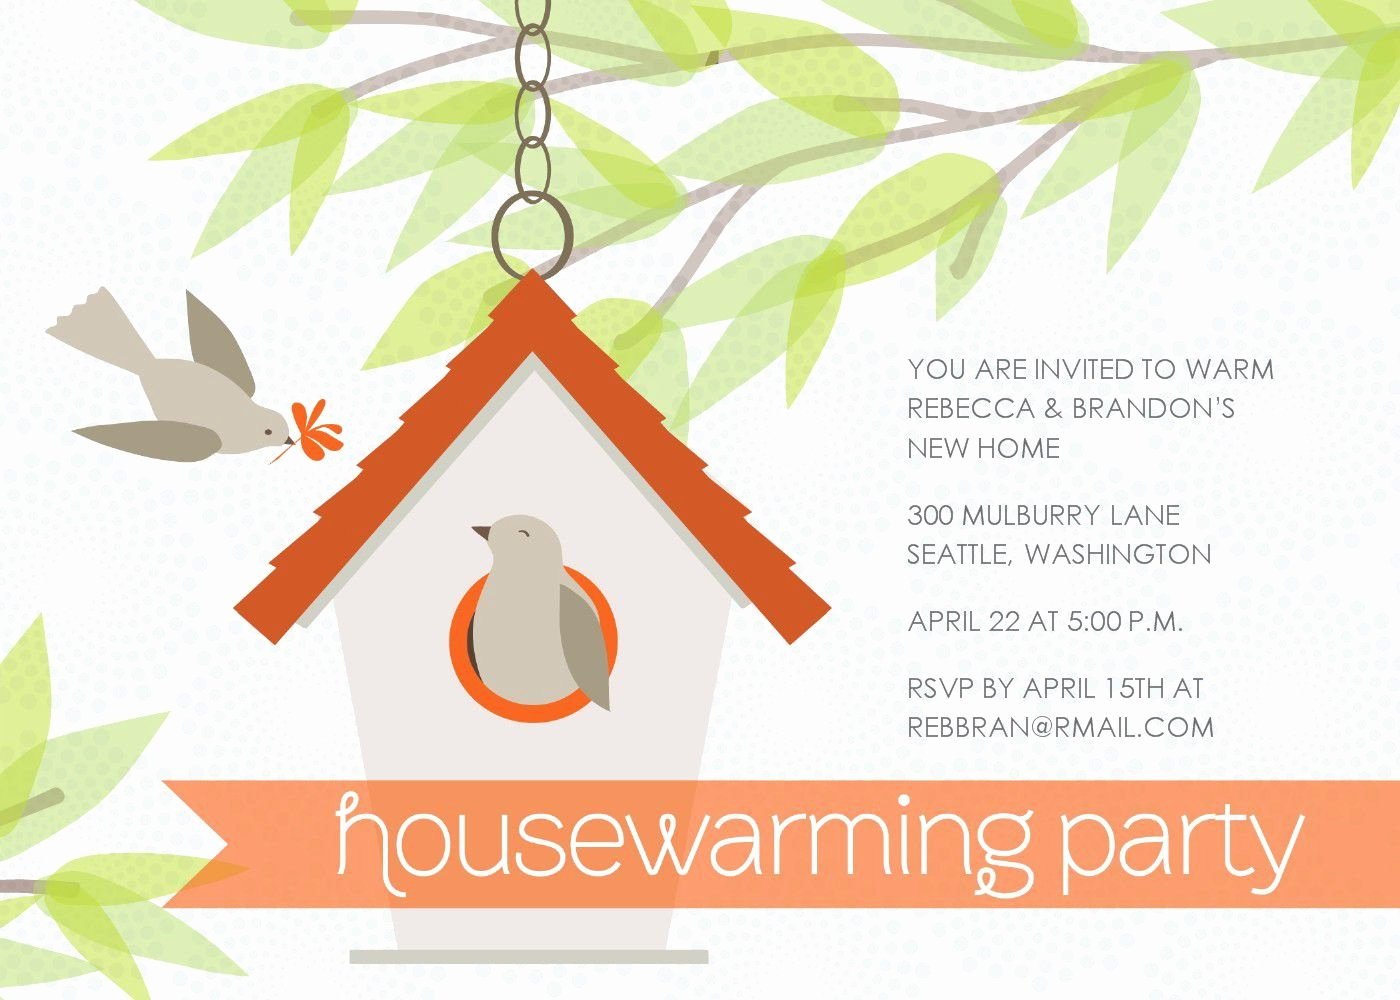 Housewarming Images for Invitation Luxury Housewarming Invitations Cards Housewarming Invitation